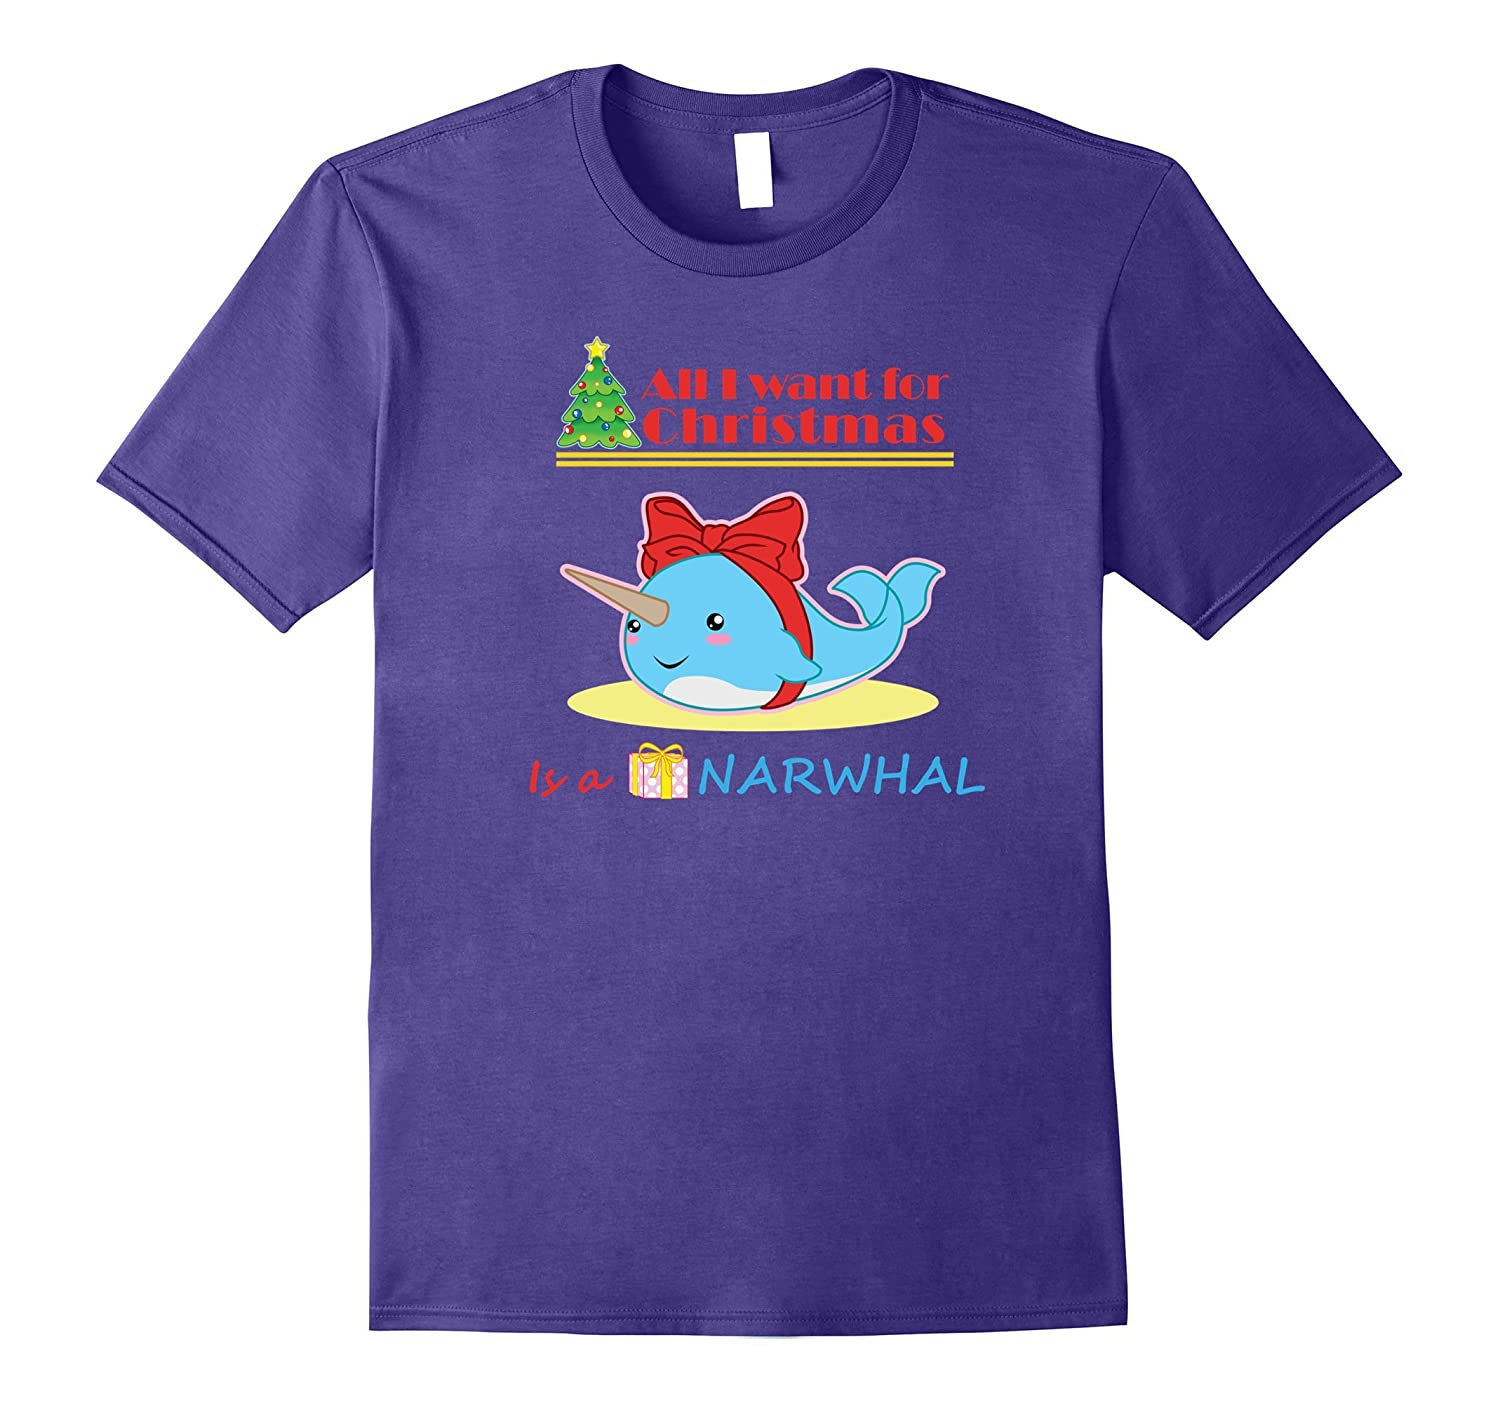 Narwhal Christmas T-Shirt for Girls I Want a Narwhal-FL